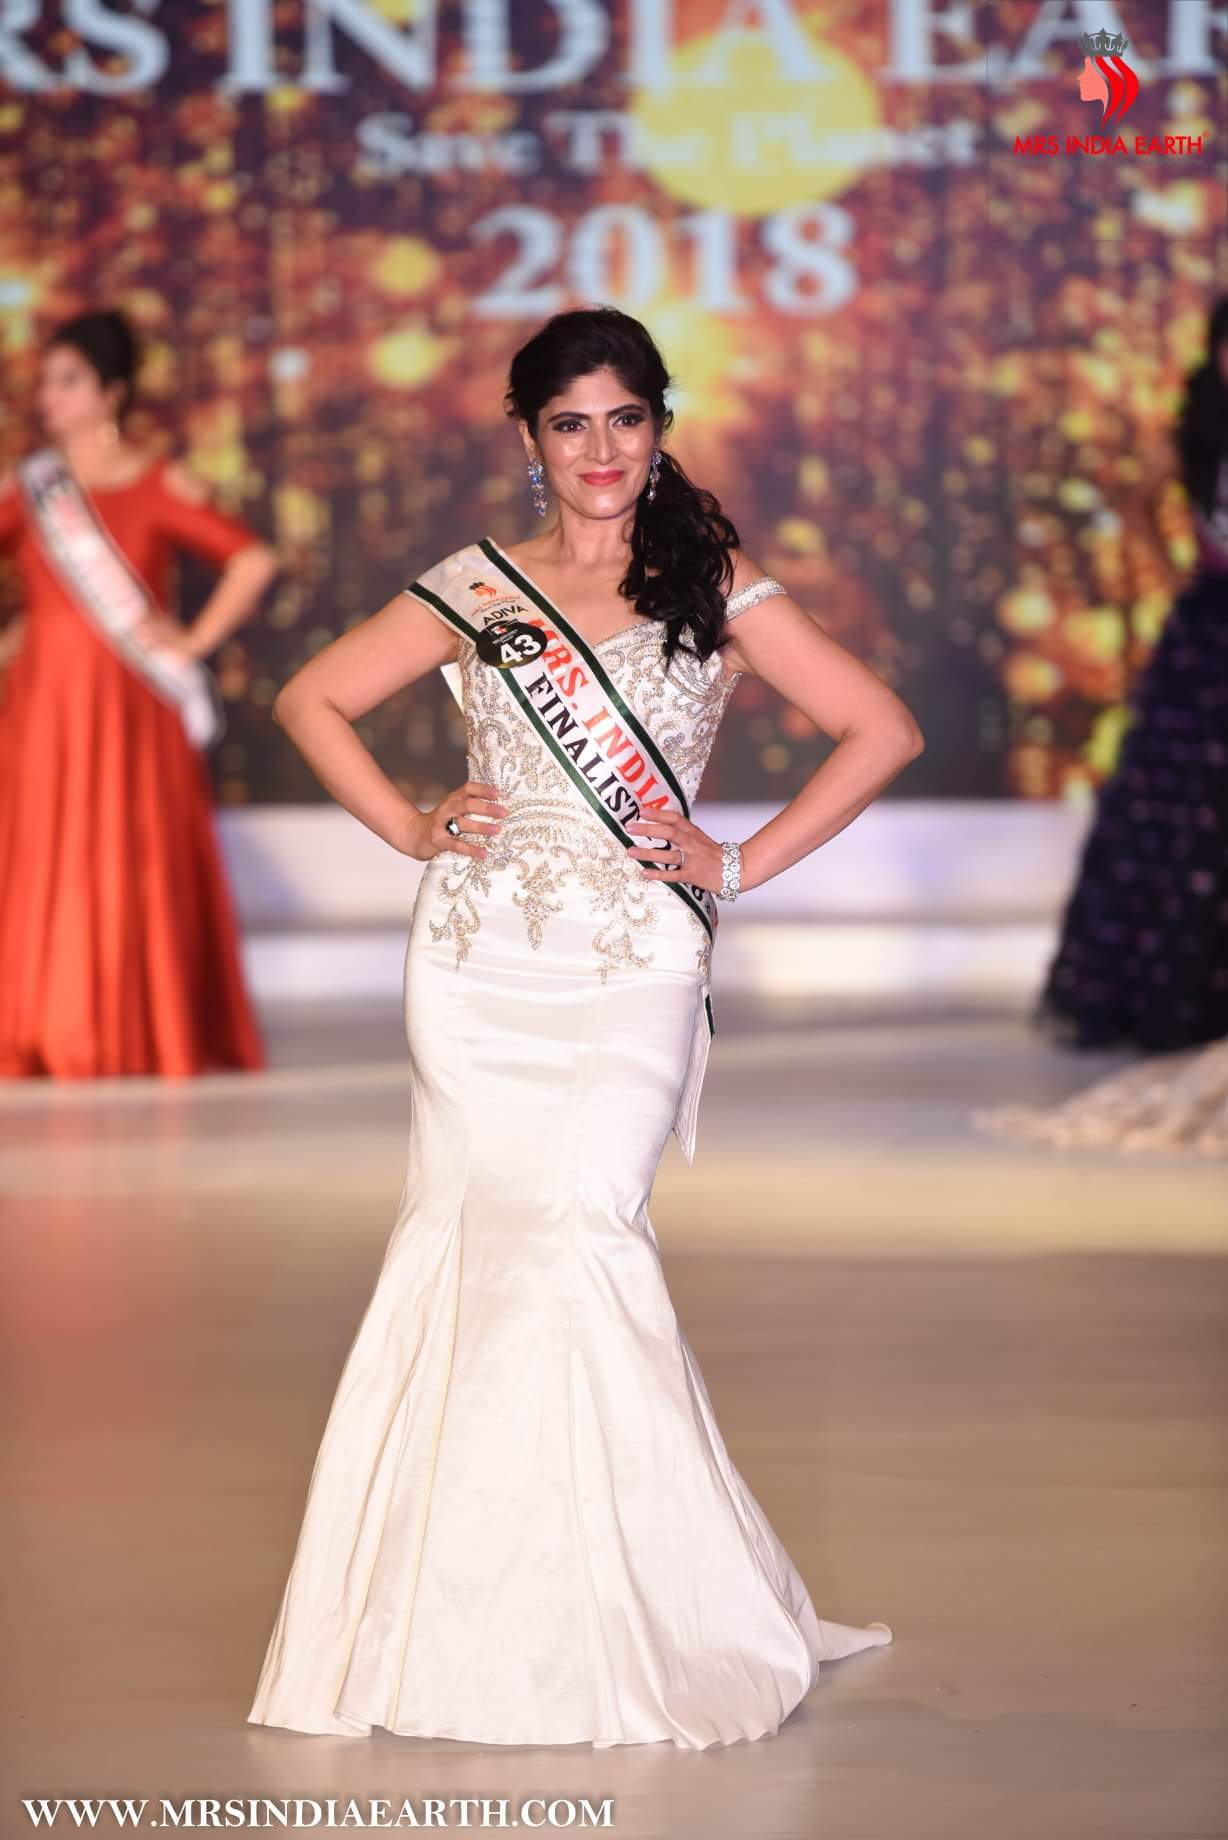 Sugandha Gopal Crowned Mrs India Earth Classic 2018